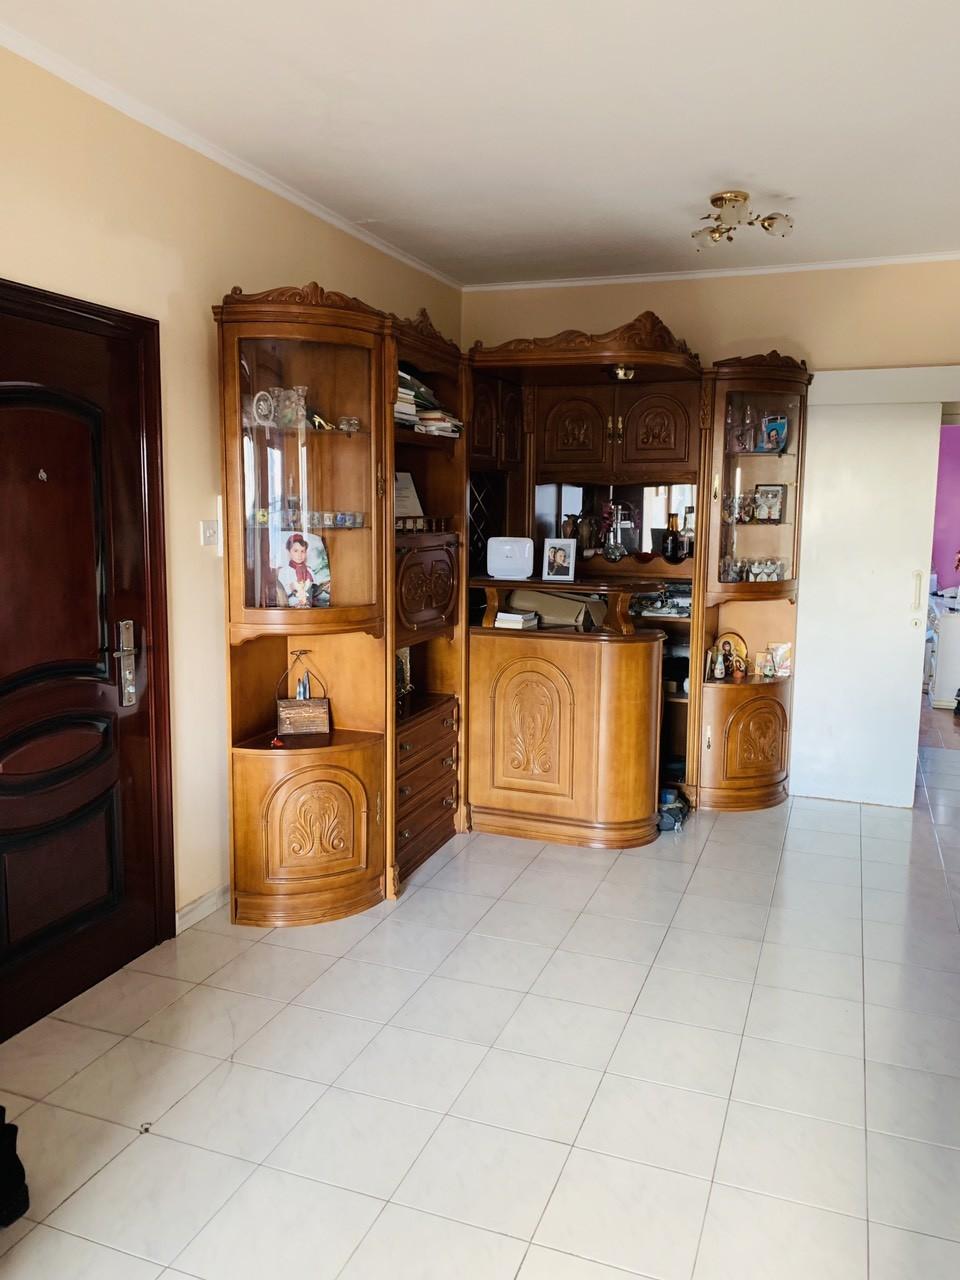 Luxury fully furnished apartment in the center of Limassol.